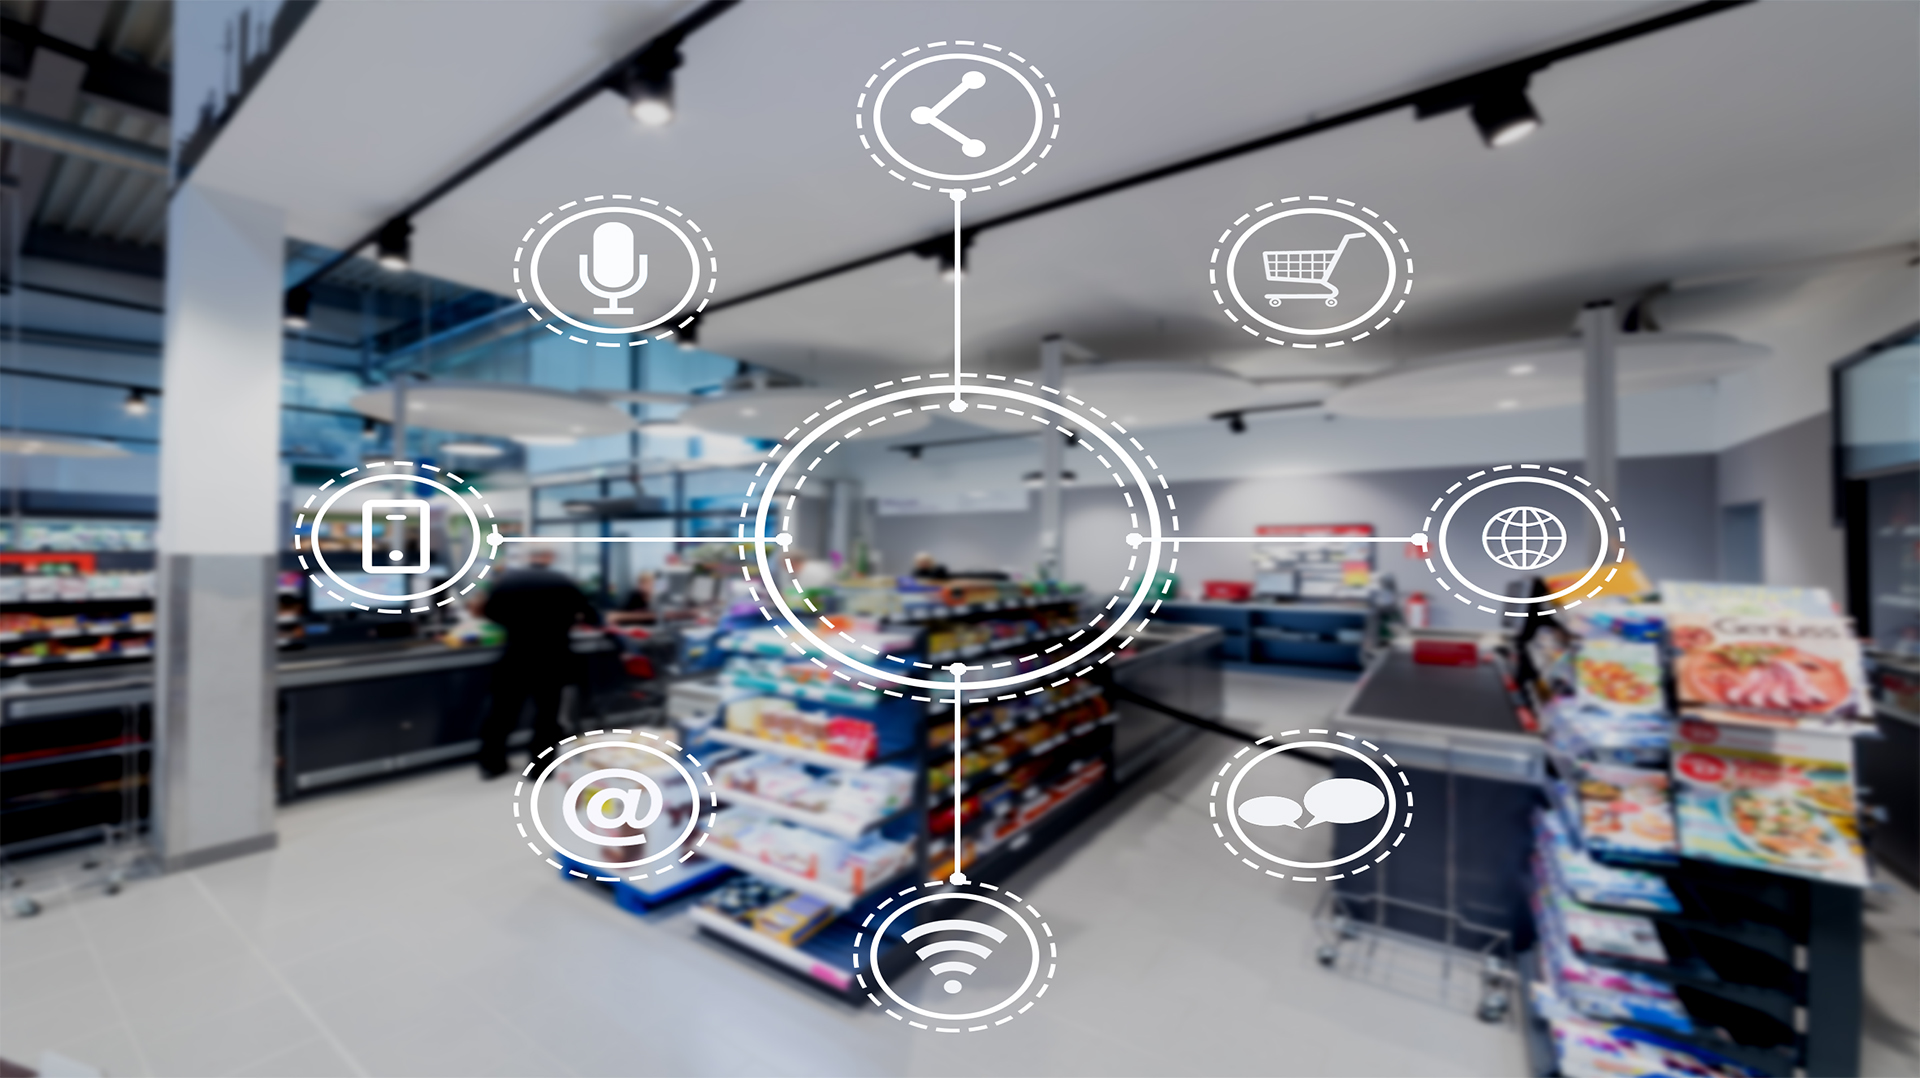 Digitalisation in the food trade